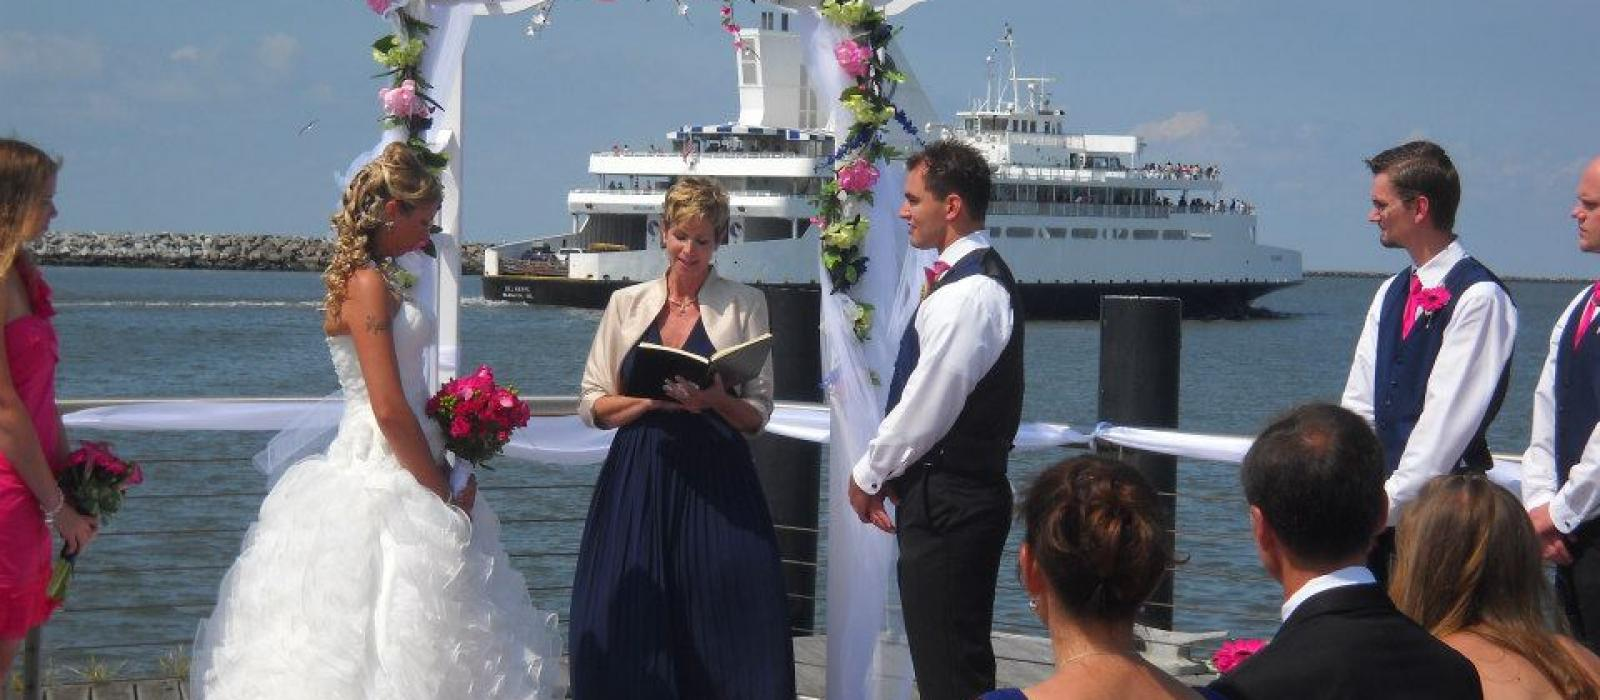 Wedding at the Lewes Finger Pier at the Delaware Ferry Terminal